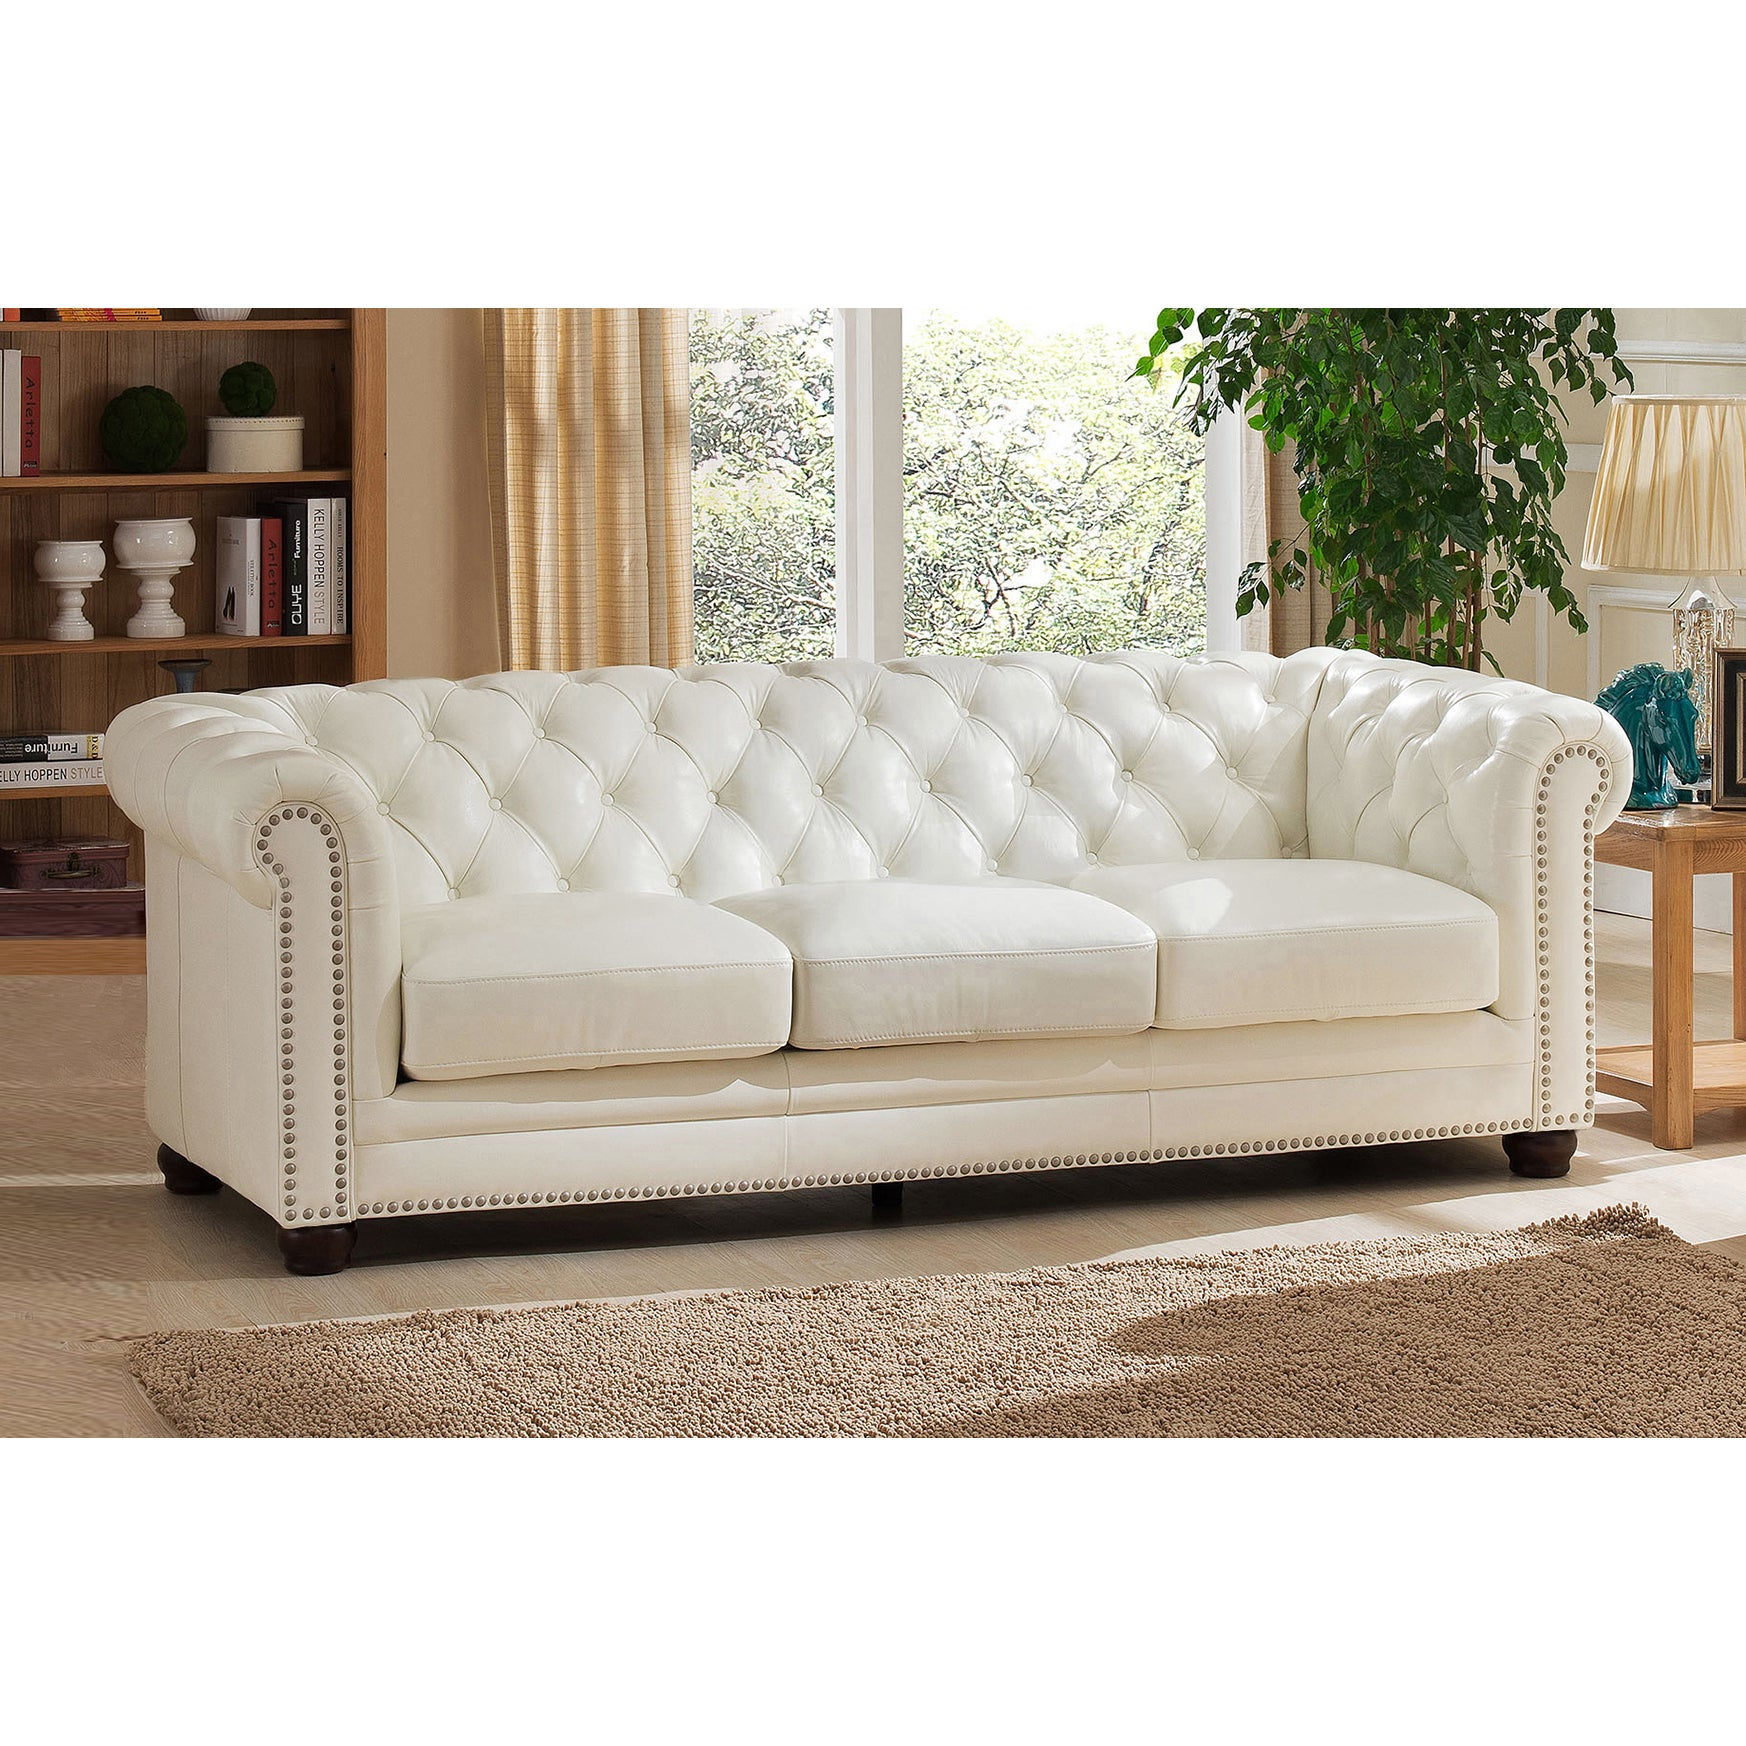 Nashville White Genuine Leather Chesterfield Sofa with Feather Down Seating (Nashville-S)